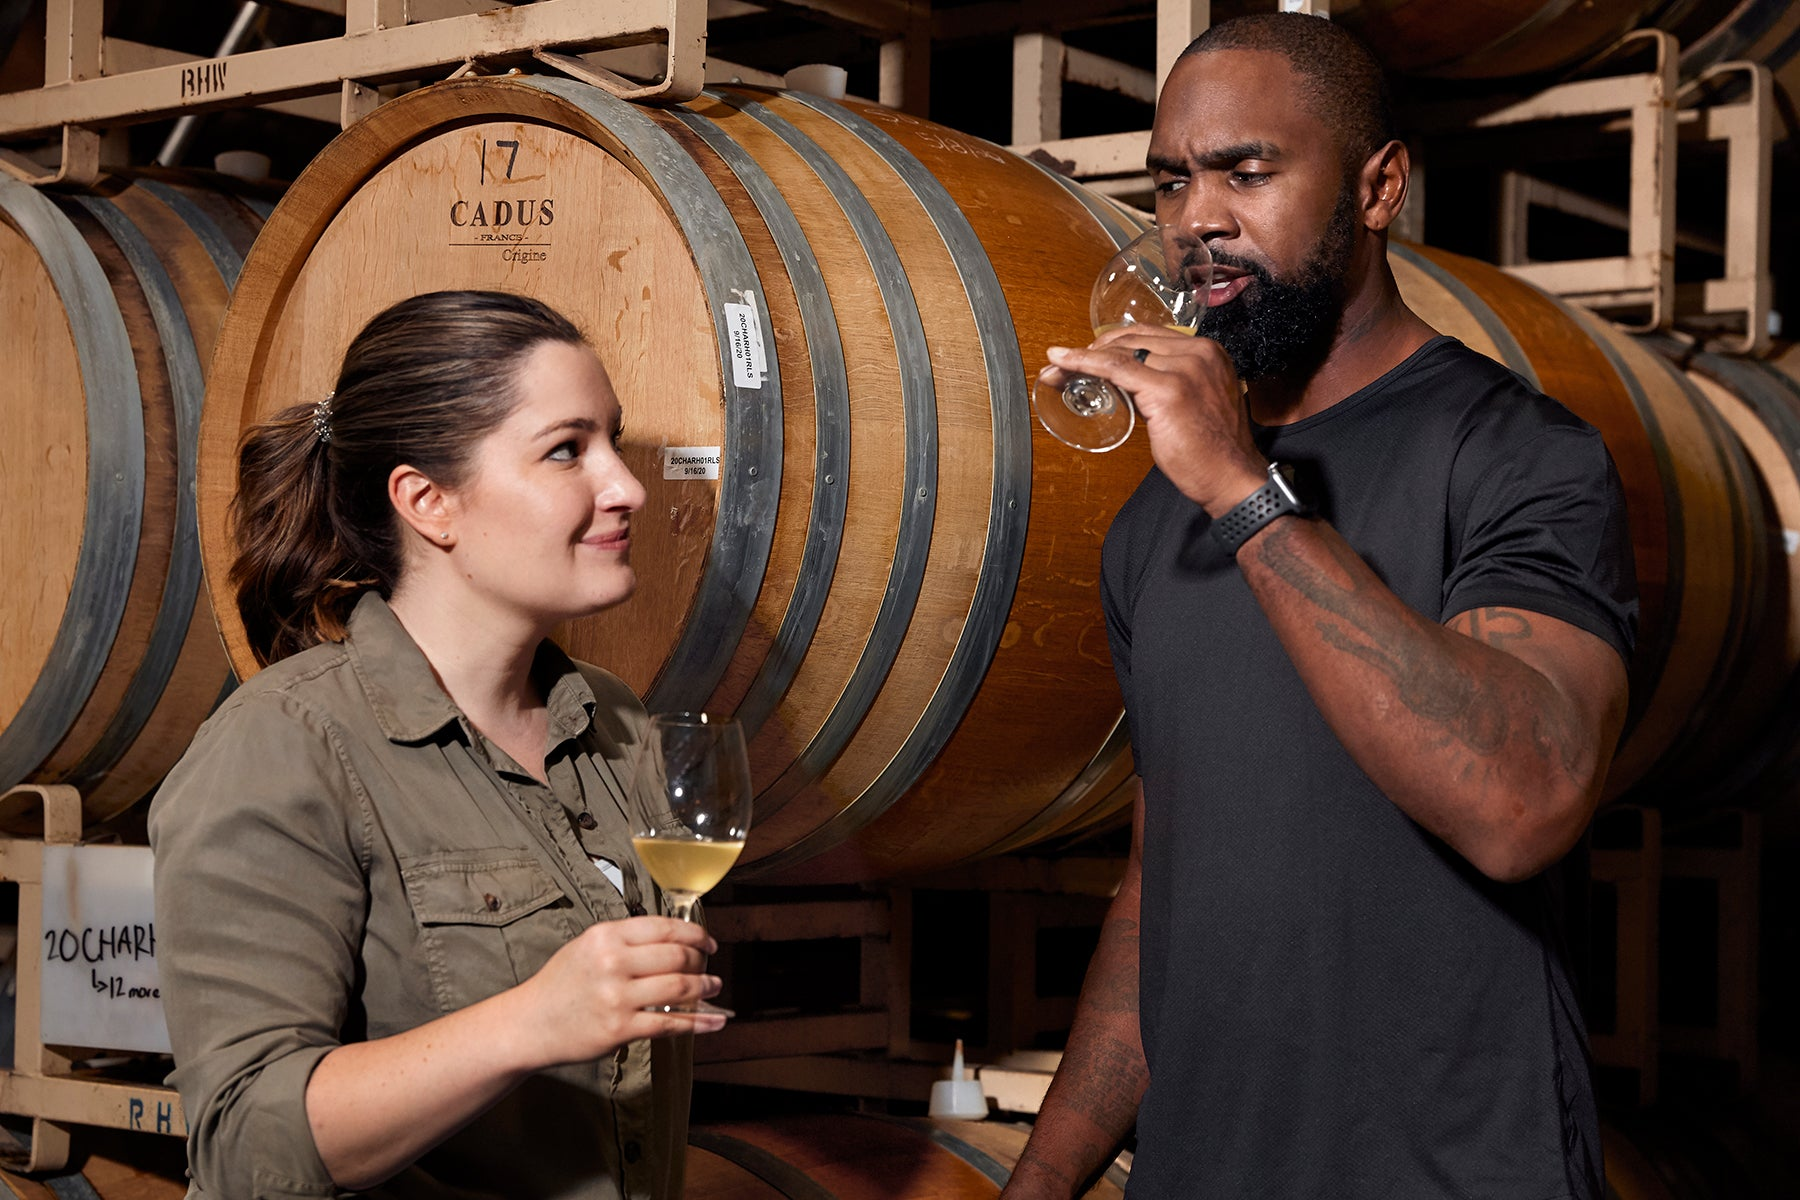 Intercept Winemaker Amanda Gorter and Charles Woodson sampling Chardonnay from barrels. Photo by Christina Schmidhofer.